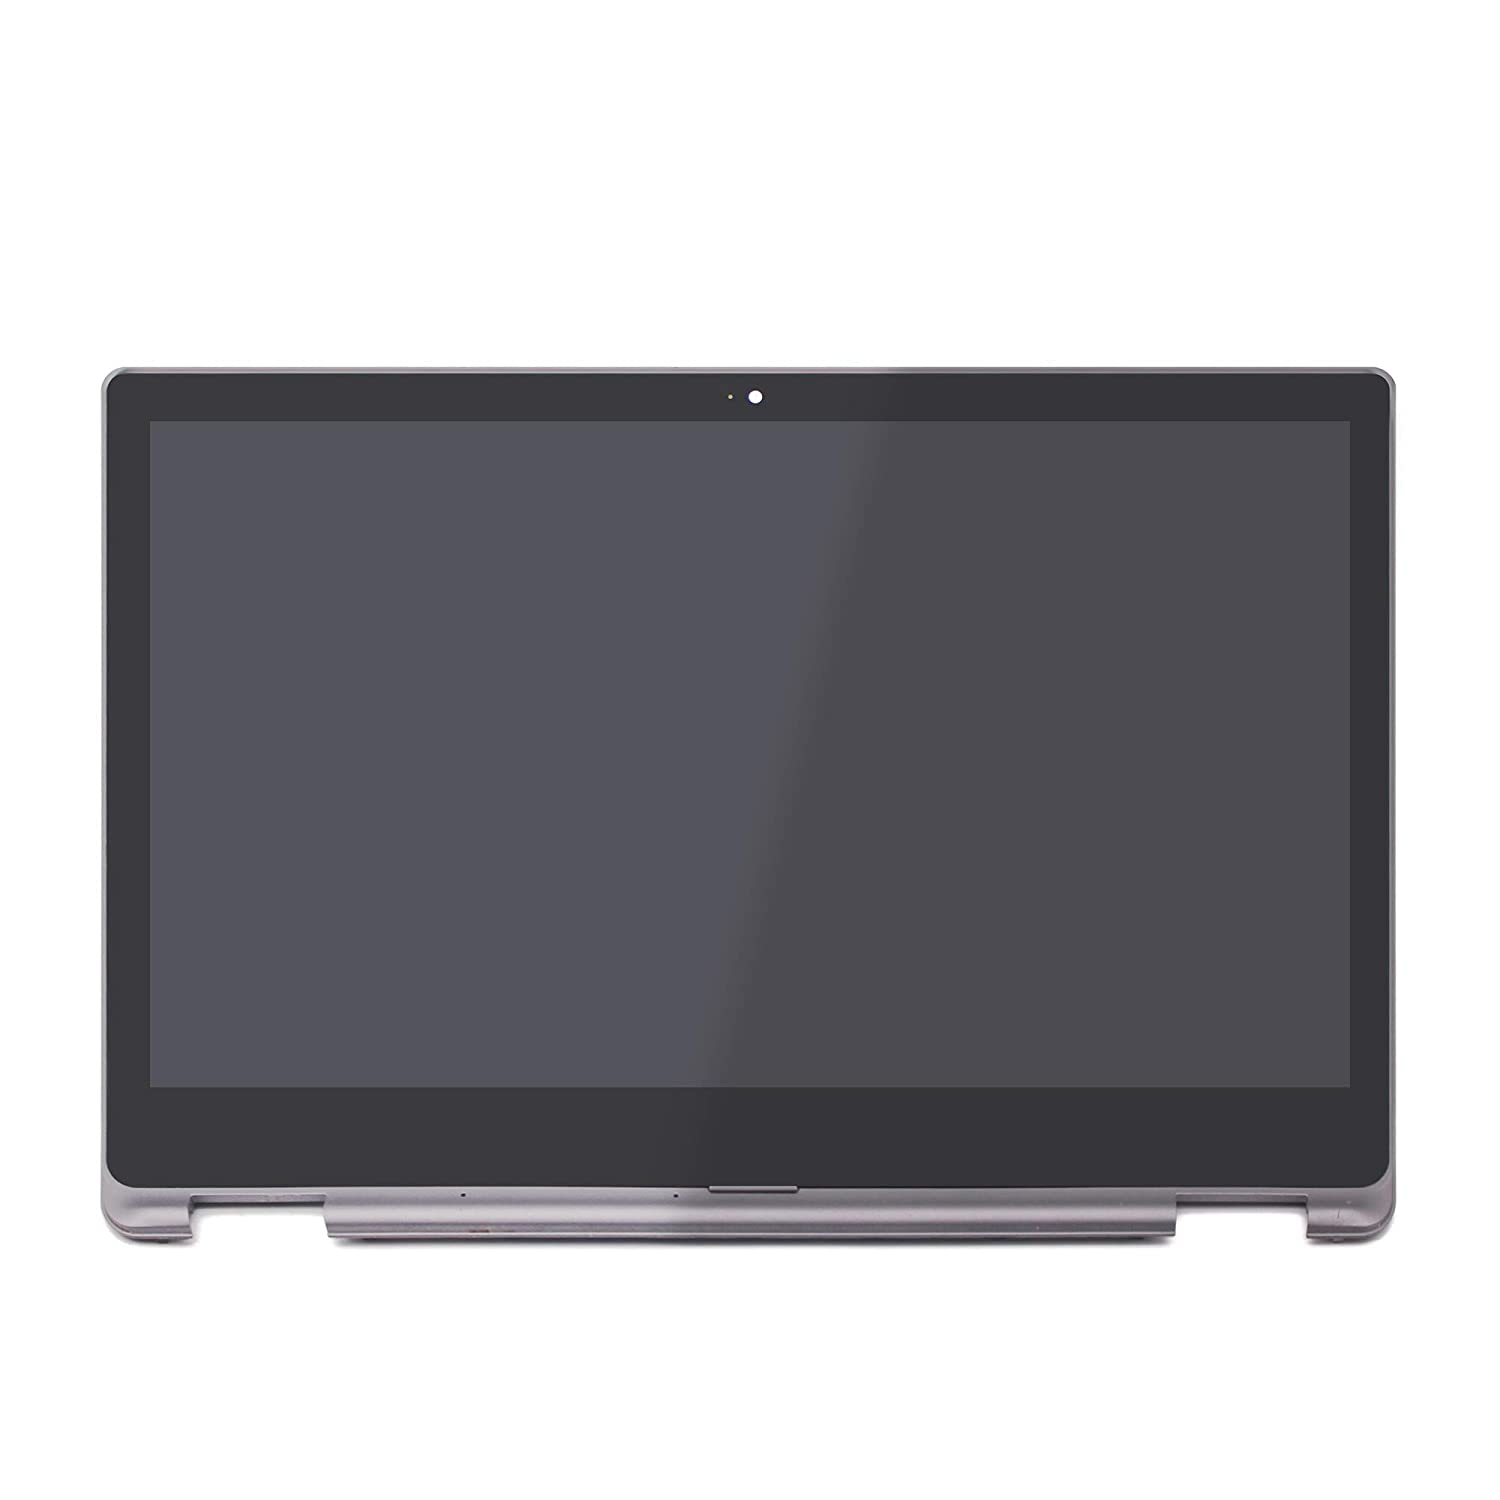 LCDOLED Compatible 15.6 inch FullHD 1080P IPS N156HCA-EA1 LED LCD Display Touch Screen Digitizer Assembly Bezel Replacement for Acer Aspire R 15 R5-571 R5-571T R5-571TG Series